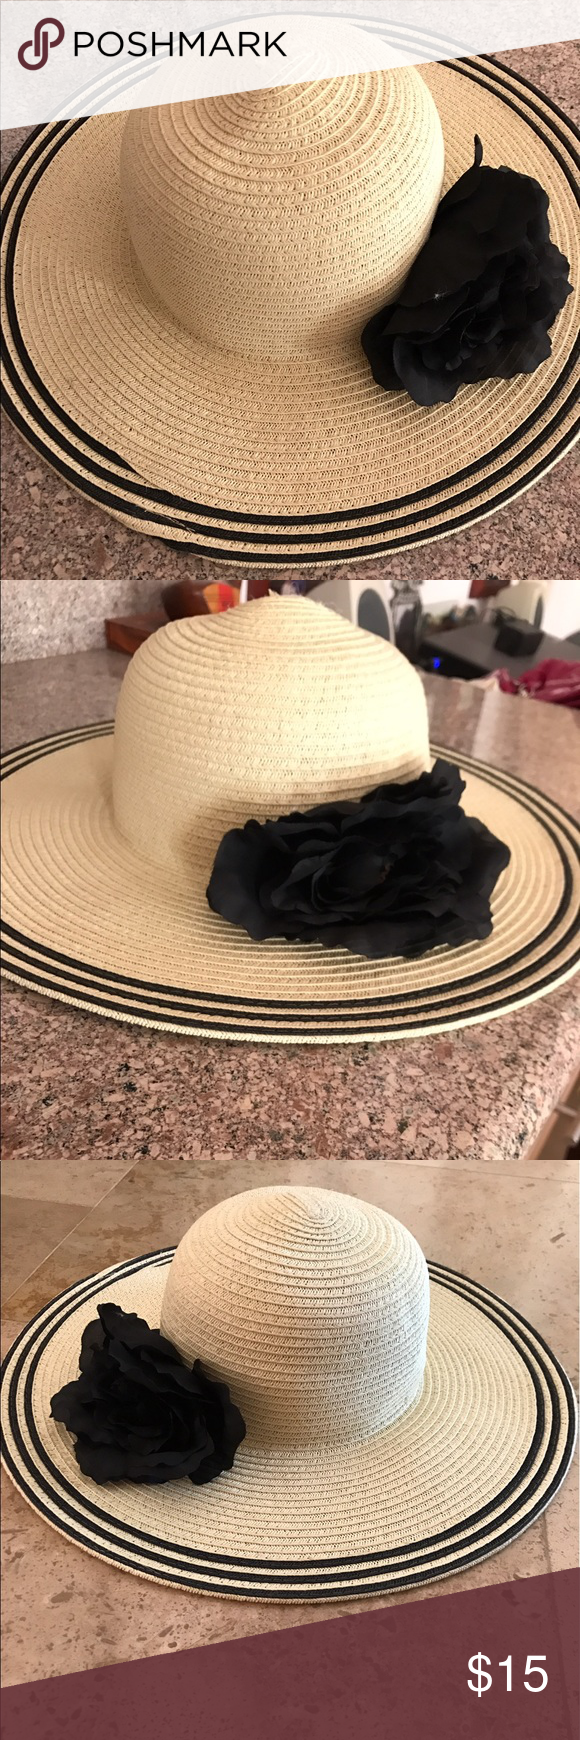 5de18ba0e6db4 Floppy summer hat with black detail perfect condition Nine West summer hat.  slightly relaxed floppy